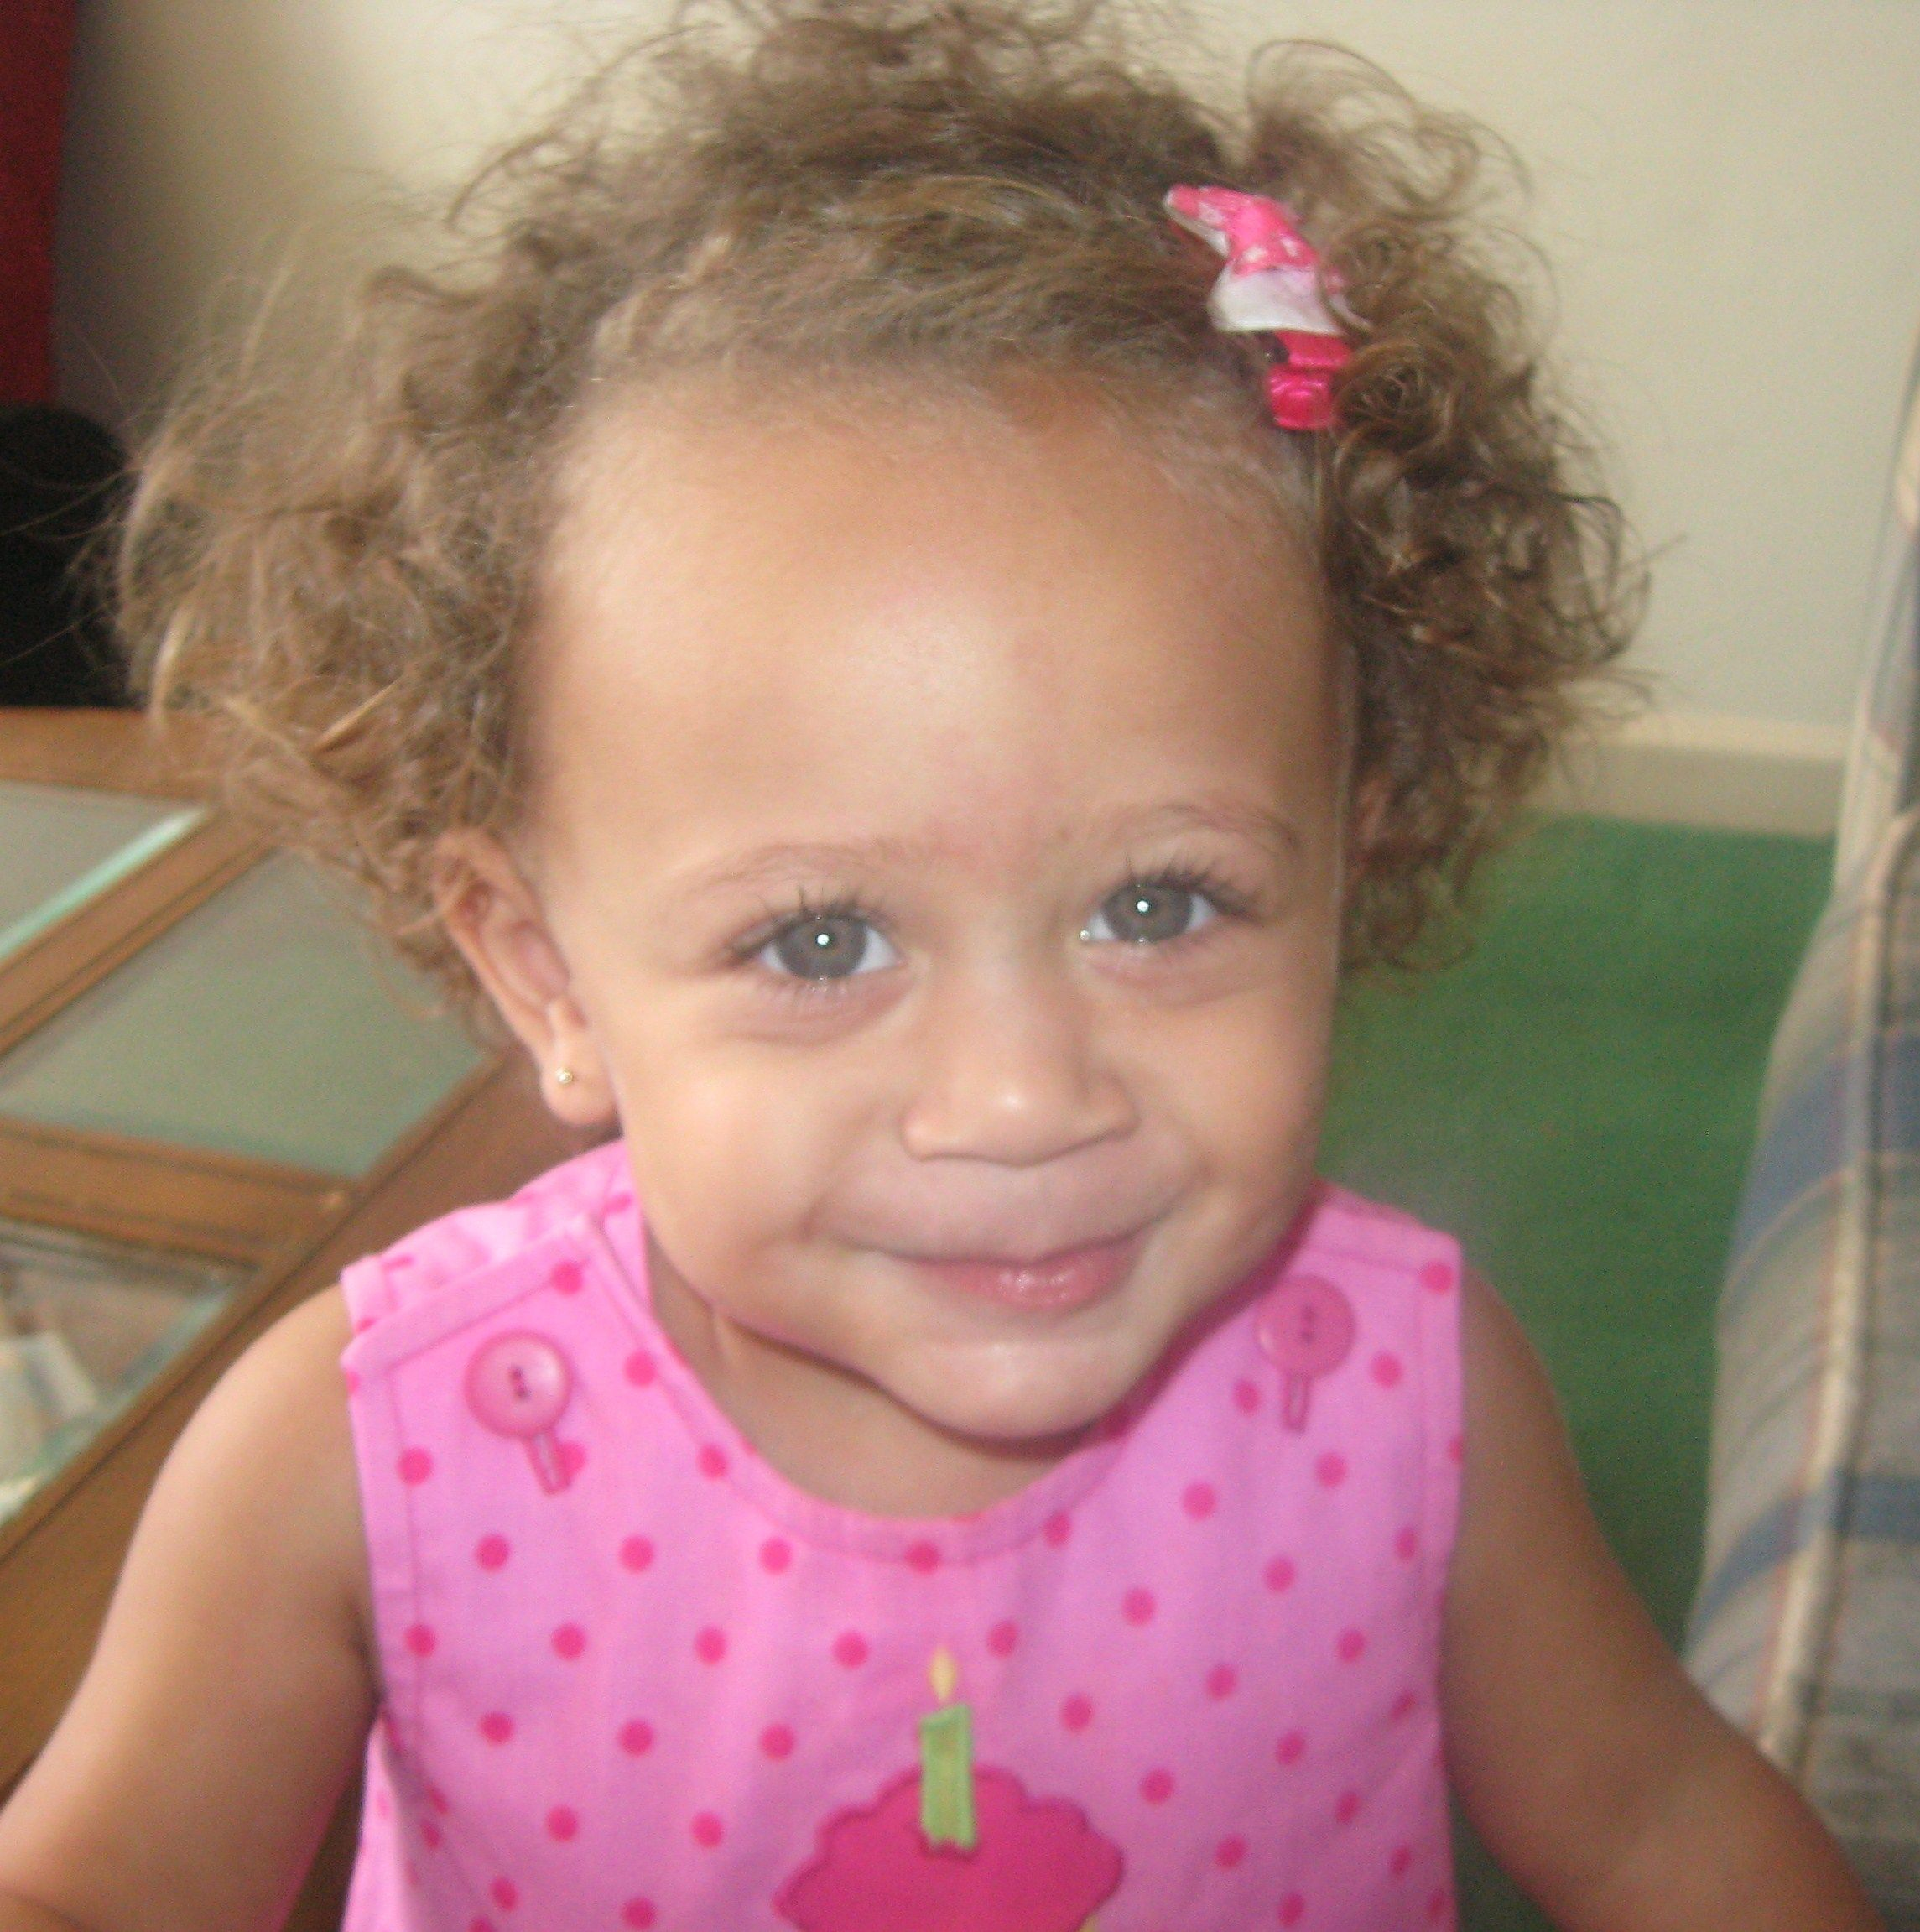 Toddler Curly Hairstyles Mixed Kids Cute Mixed Kids Curly Kids Pinterest Mixed Children